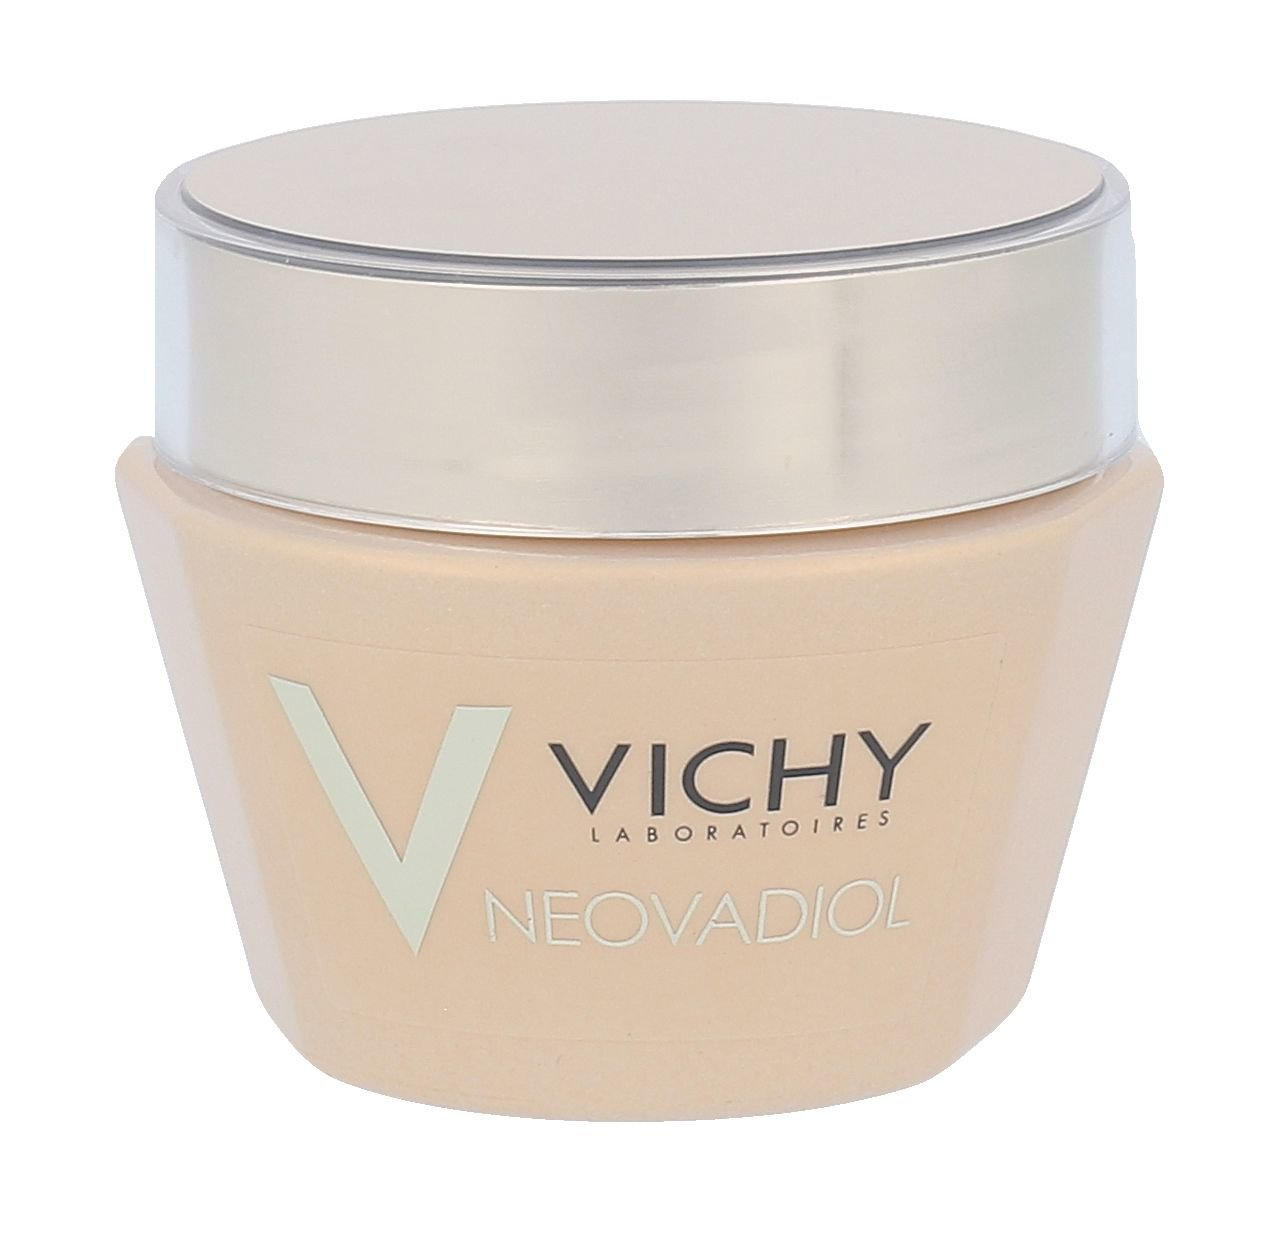 Vichy Neovadiol Compensating Complex Daycare Cosmetic 50ml